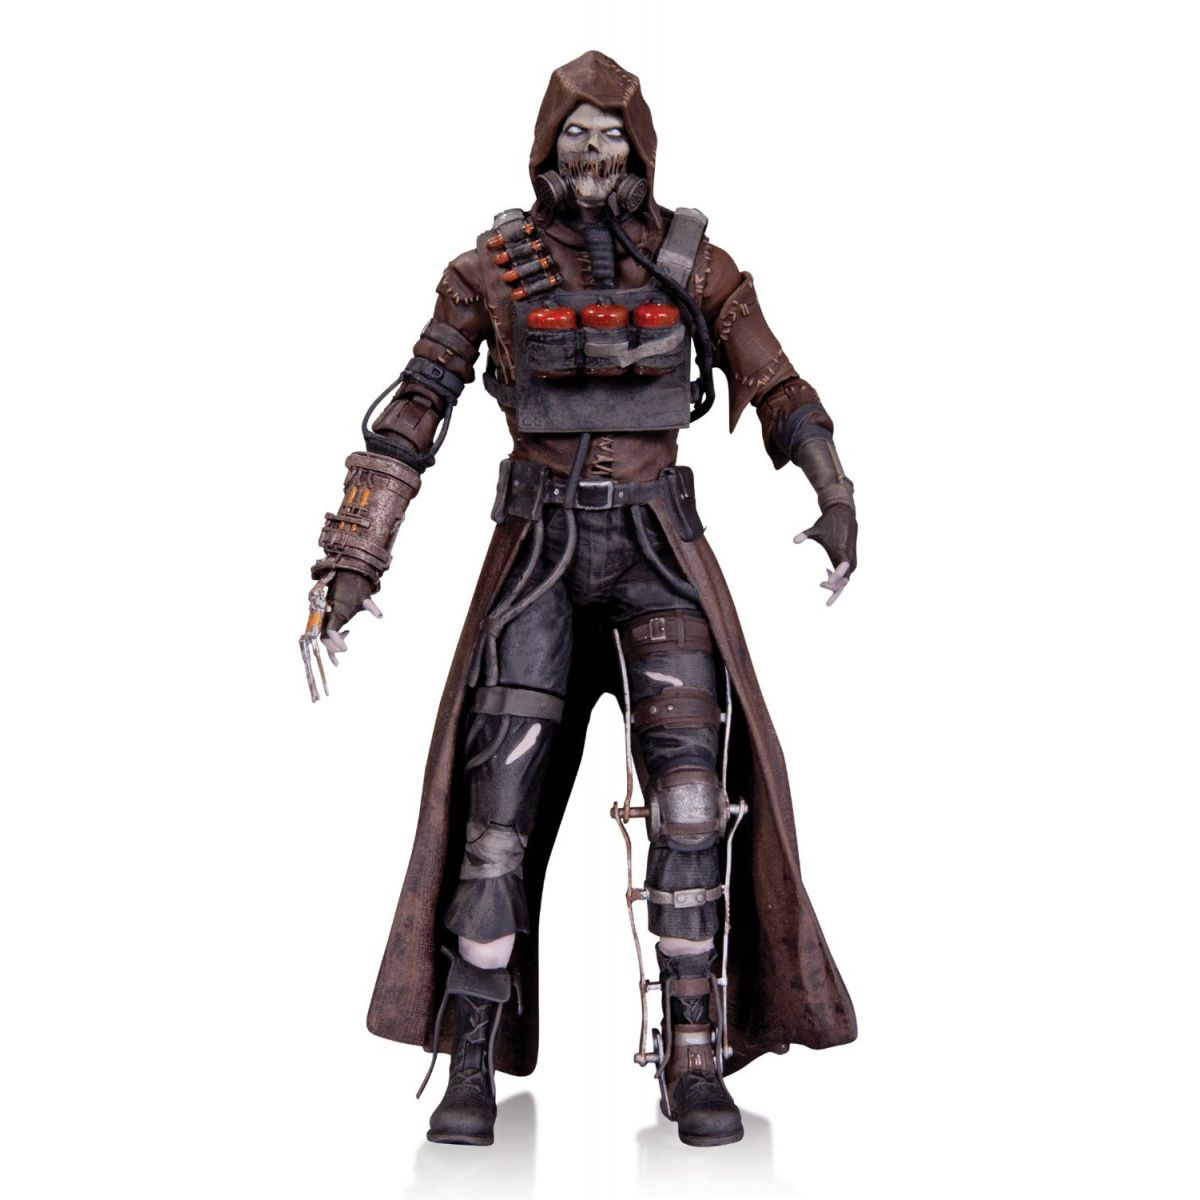 Arkhan Knight Espantalho - Action Figure